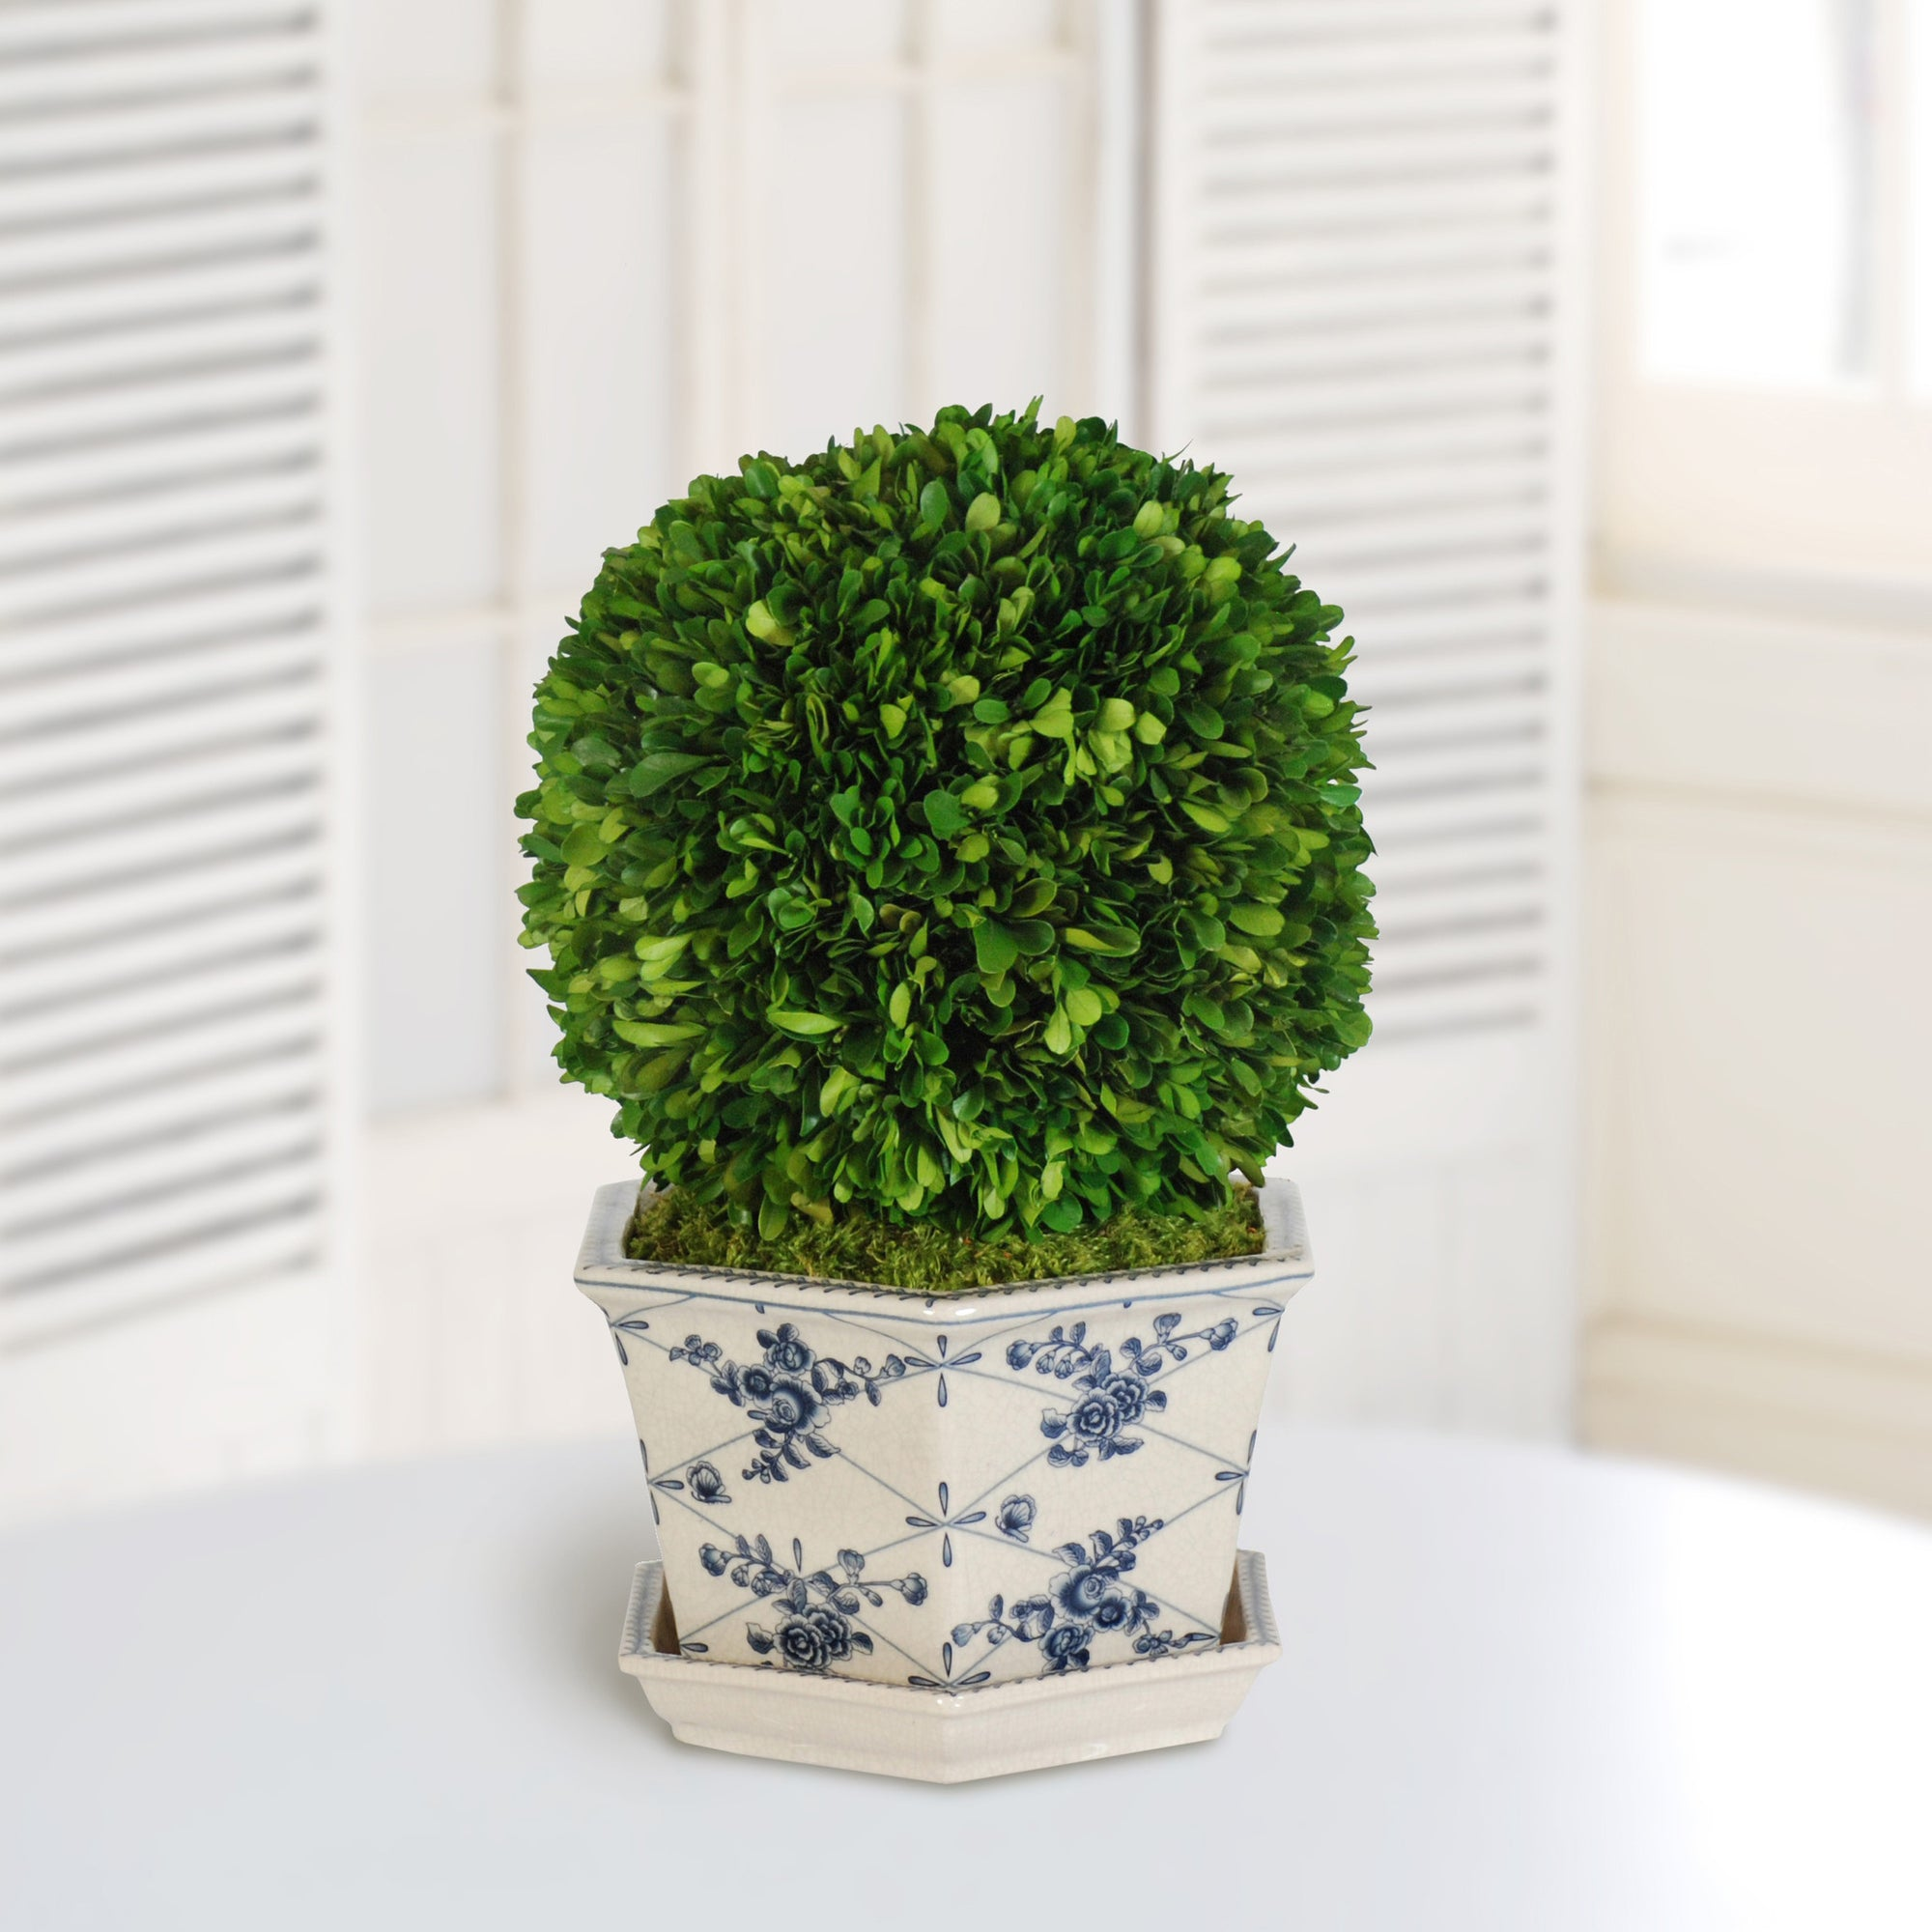 BOXWOOD BALL IN POT CACHE (WHD096.GR) - Winward Home faux floral arrangements